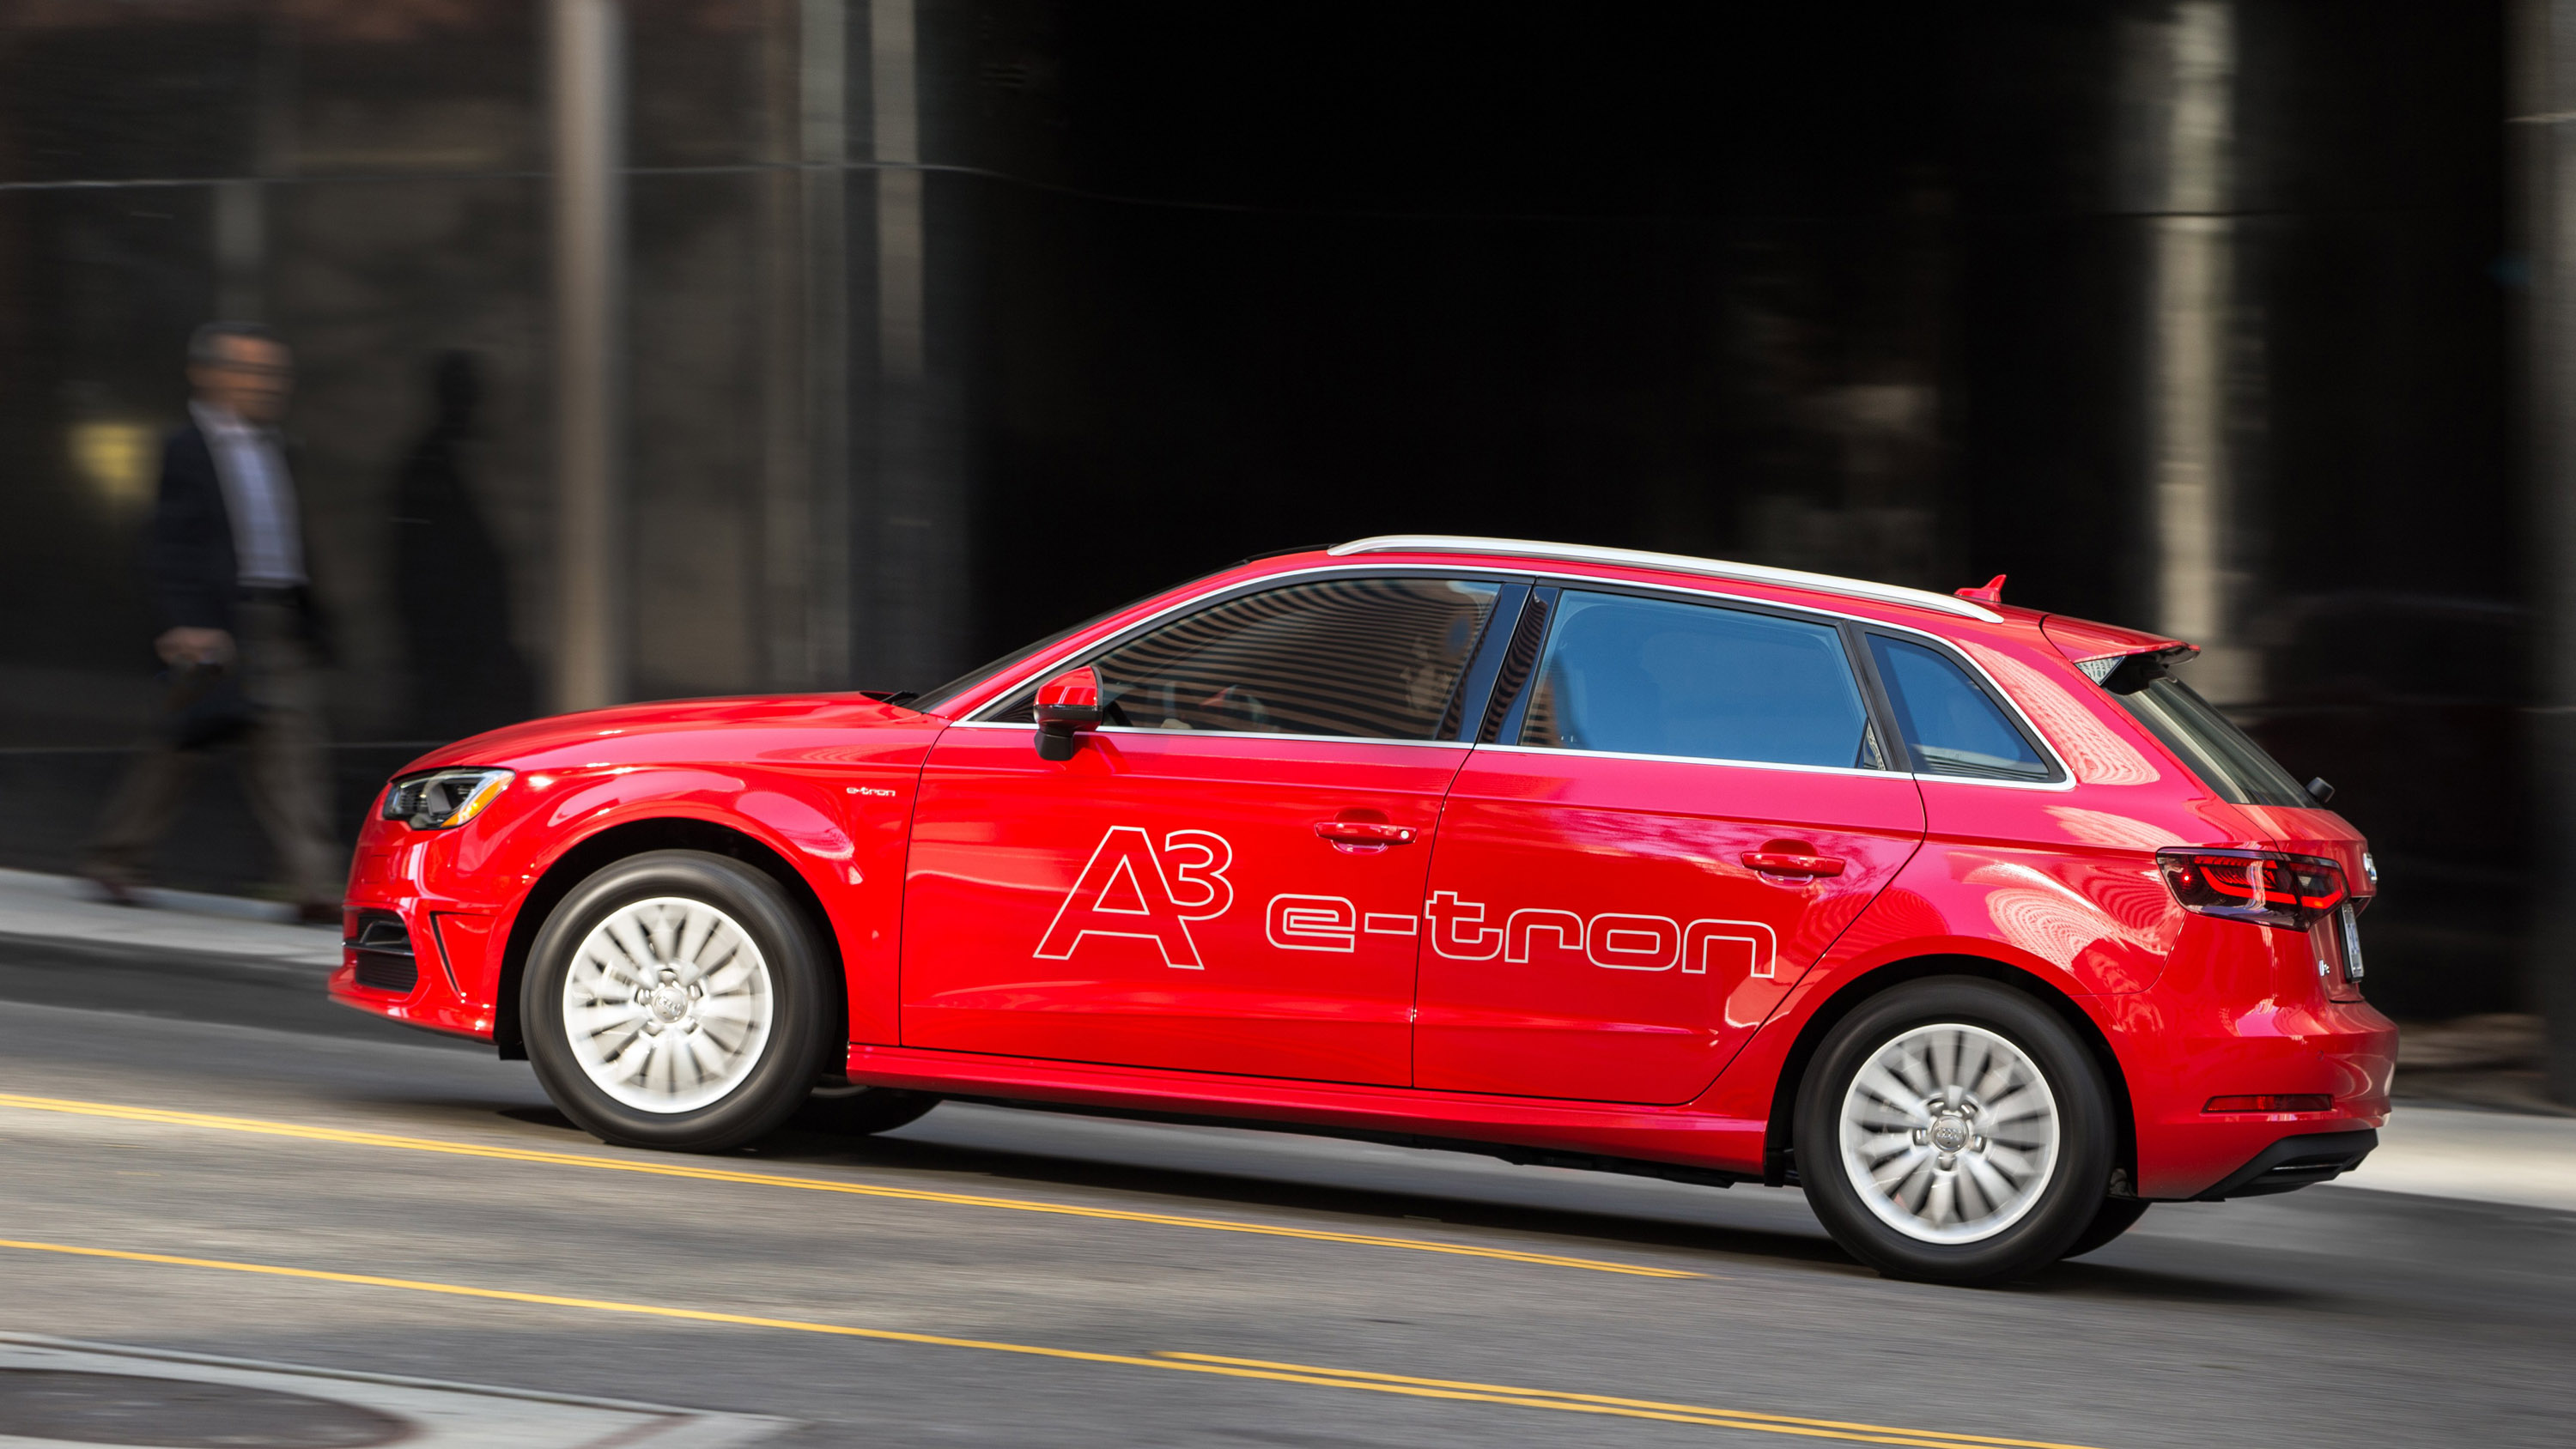 2016 audi a3 e tron hybrid will mark brand 39 s new page in its history. Black Bedroom Furniture Sets. Home Design Ideas